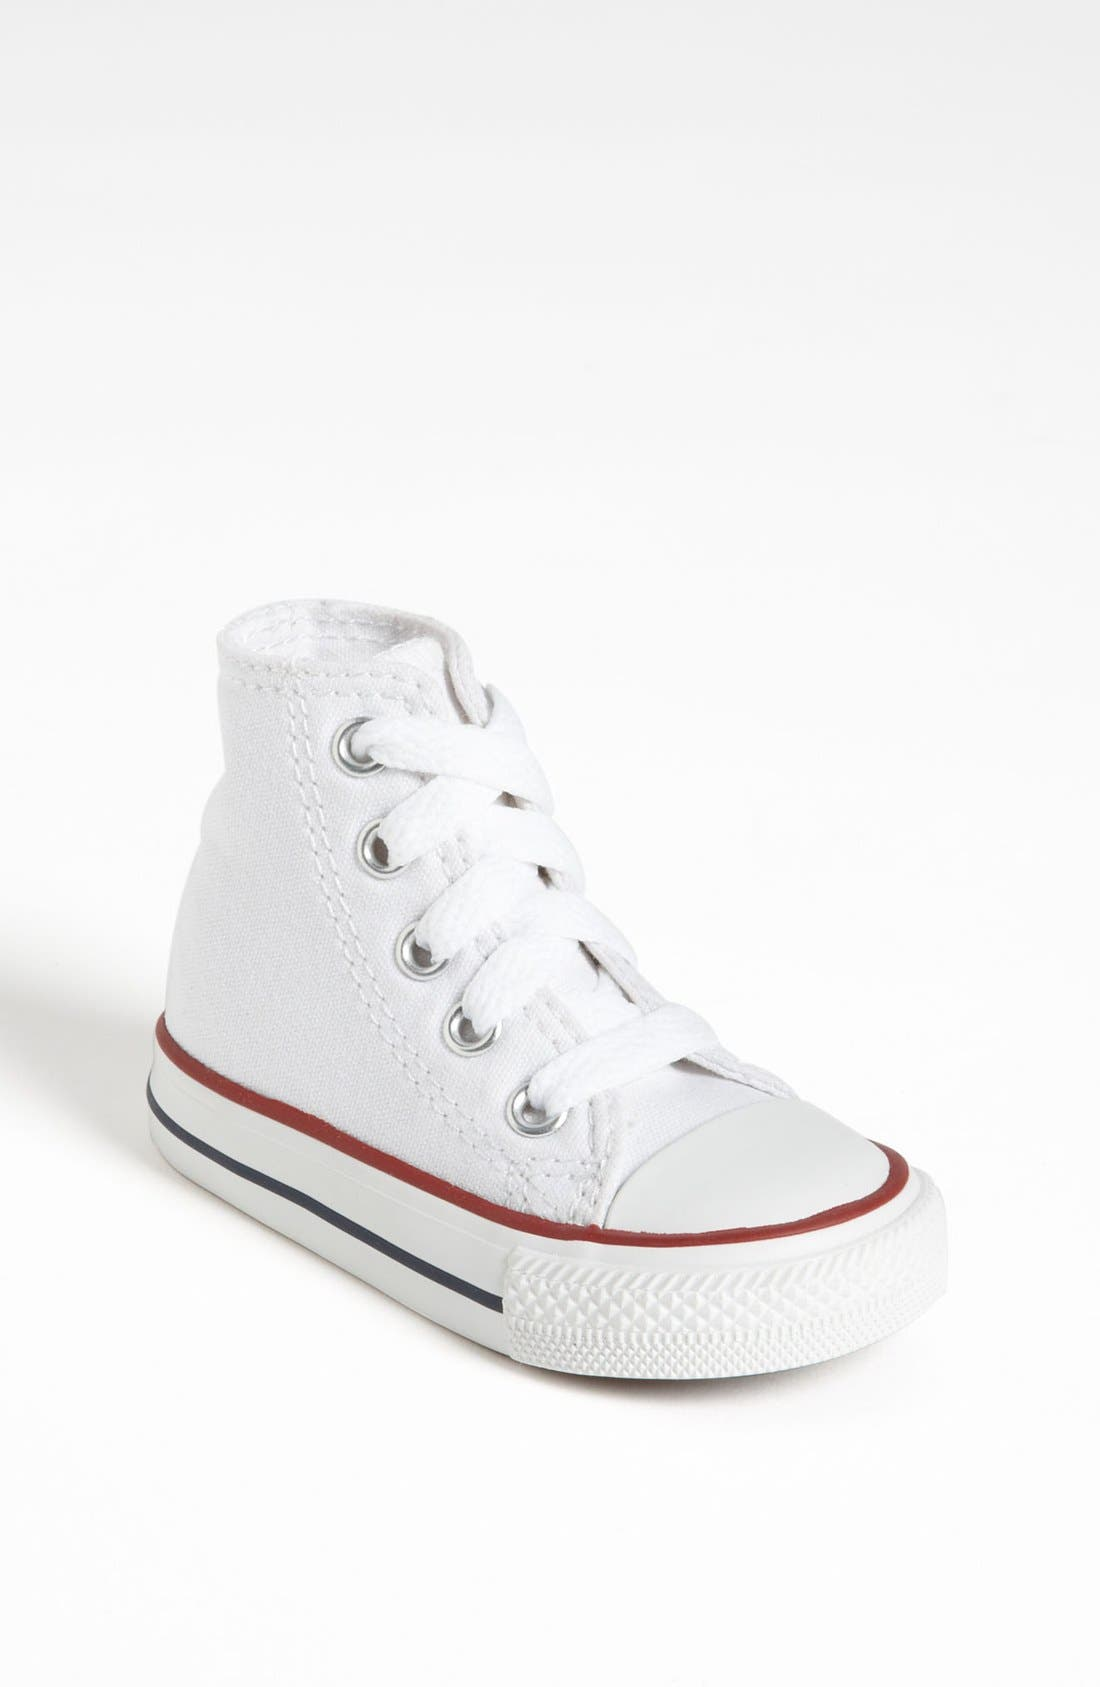 converse shoes high tops for girls. main image - converse all star® high top sneaker (baby, walker \u0026 toddler shoes tops for girls a